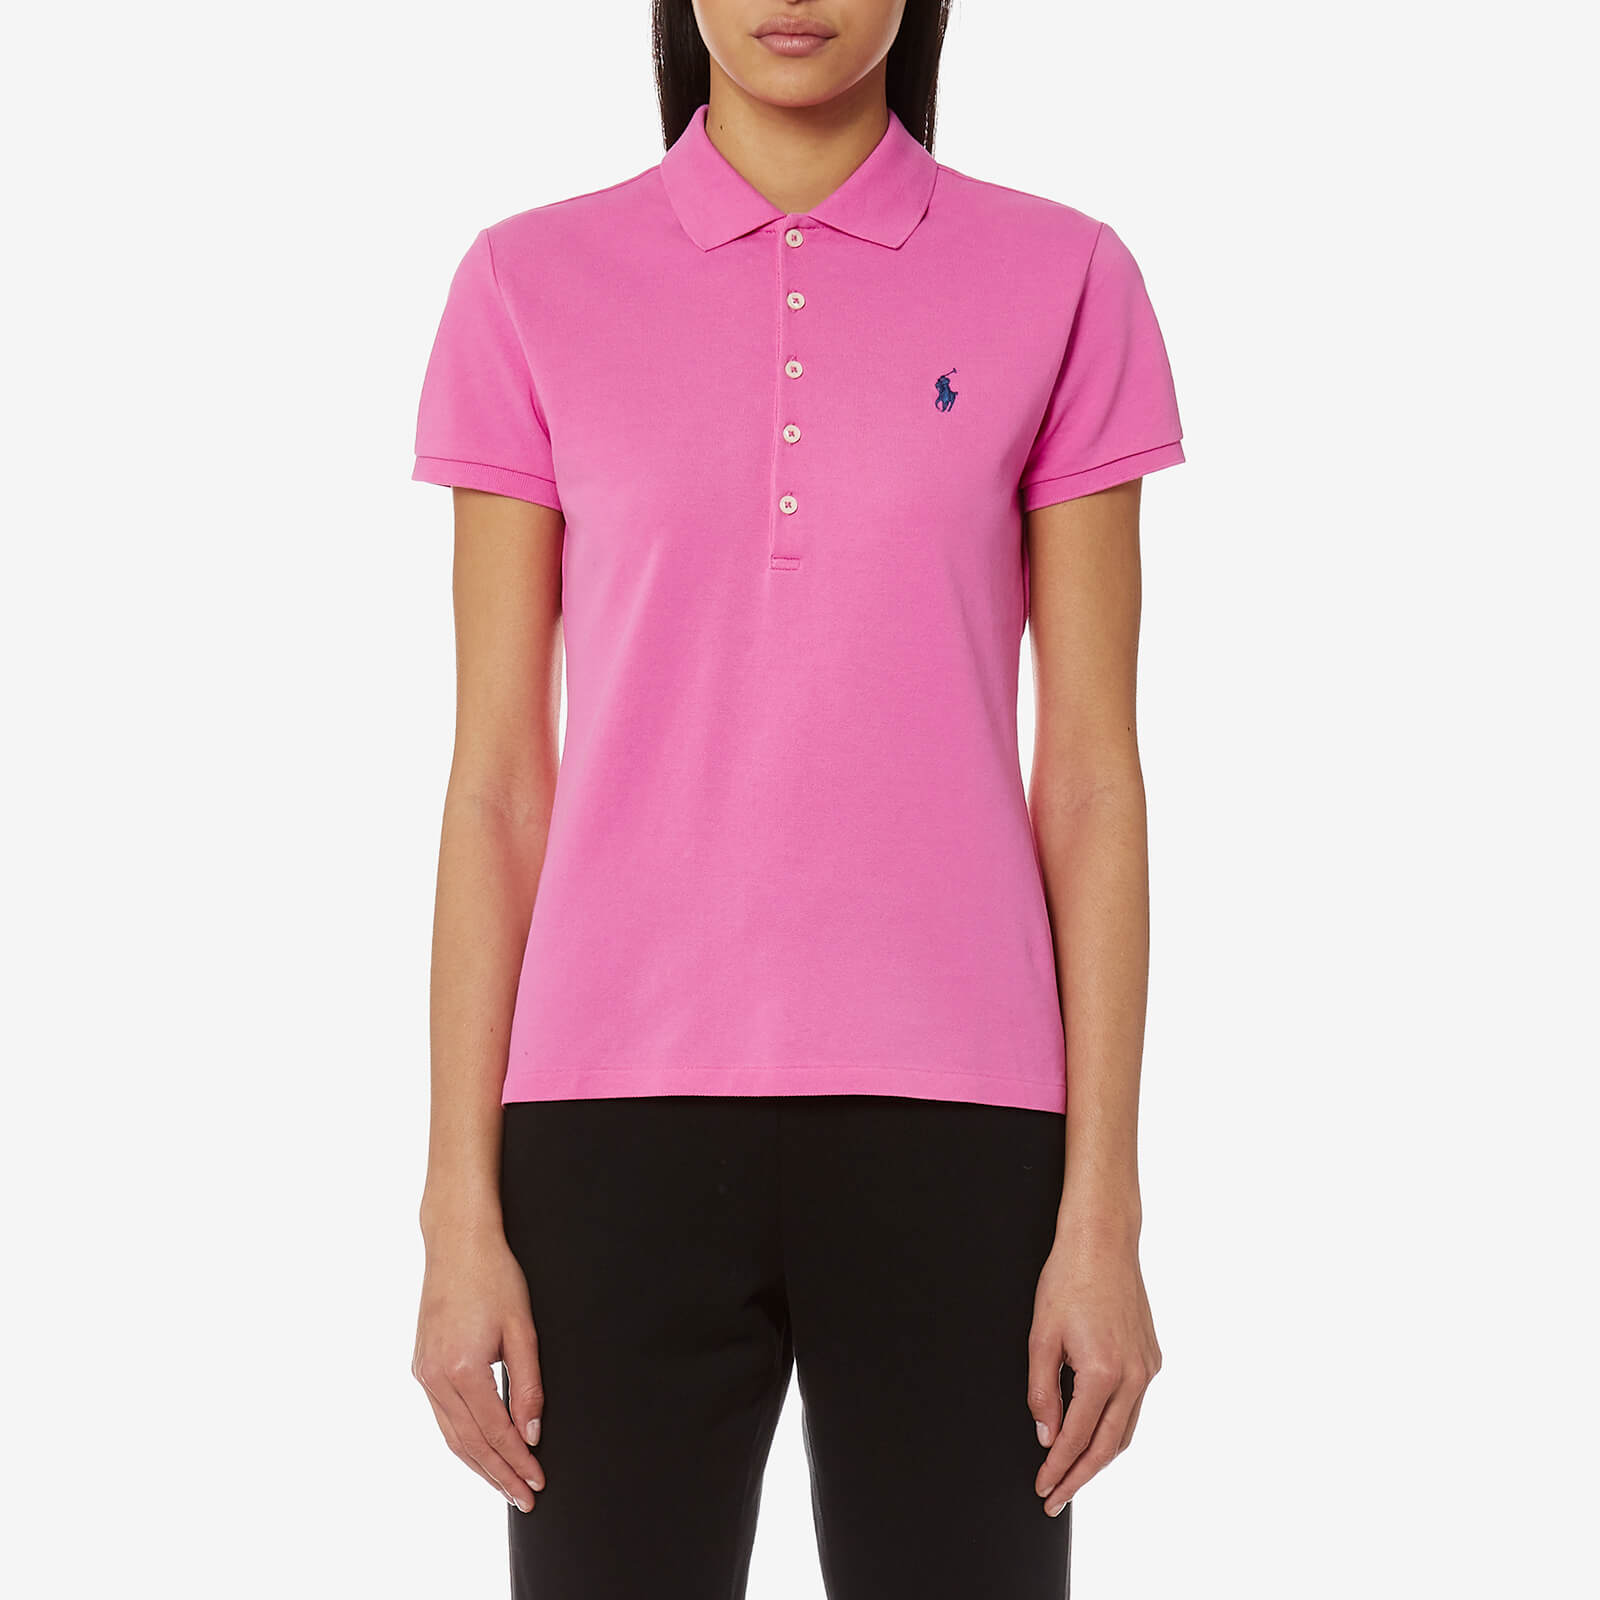 a35fe9e7f970 Polo Ralph Lauren Women's Julie T-Shirt - Pink Peonie - Free UK Delivery  over £50